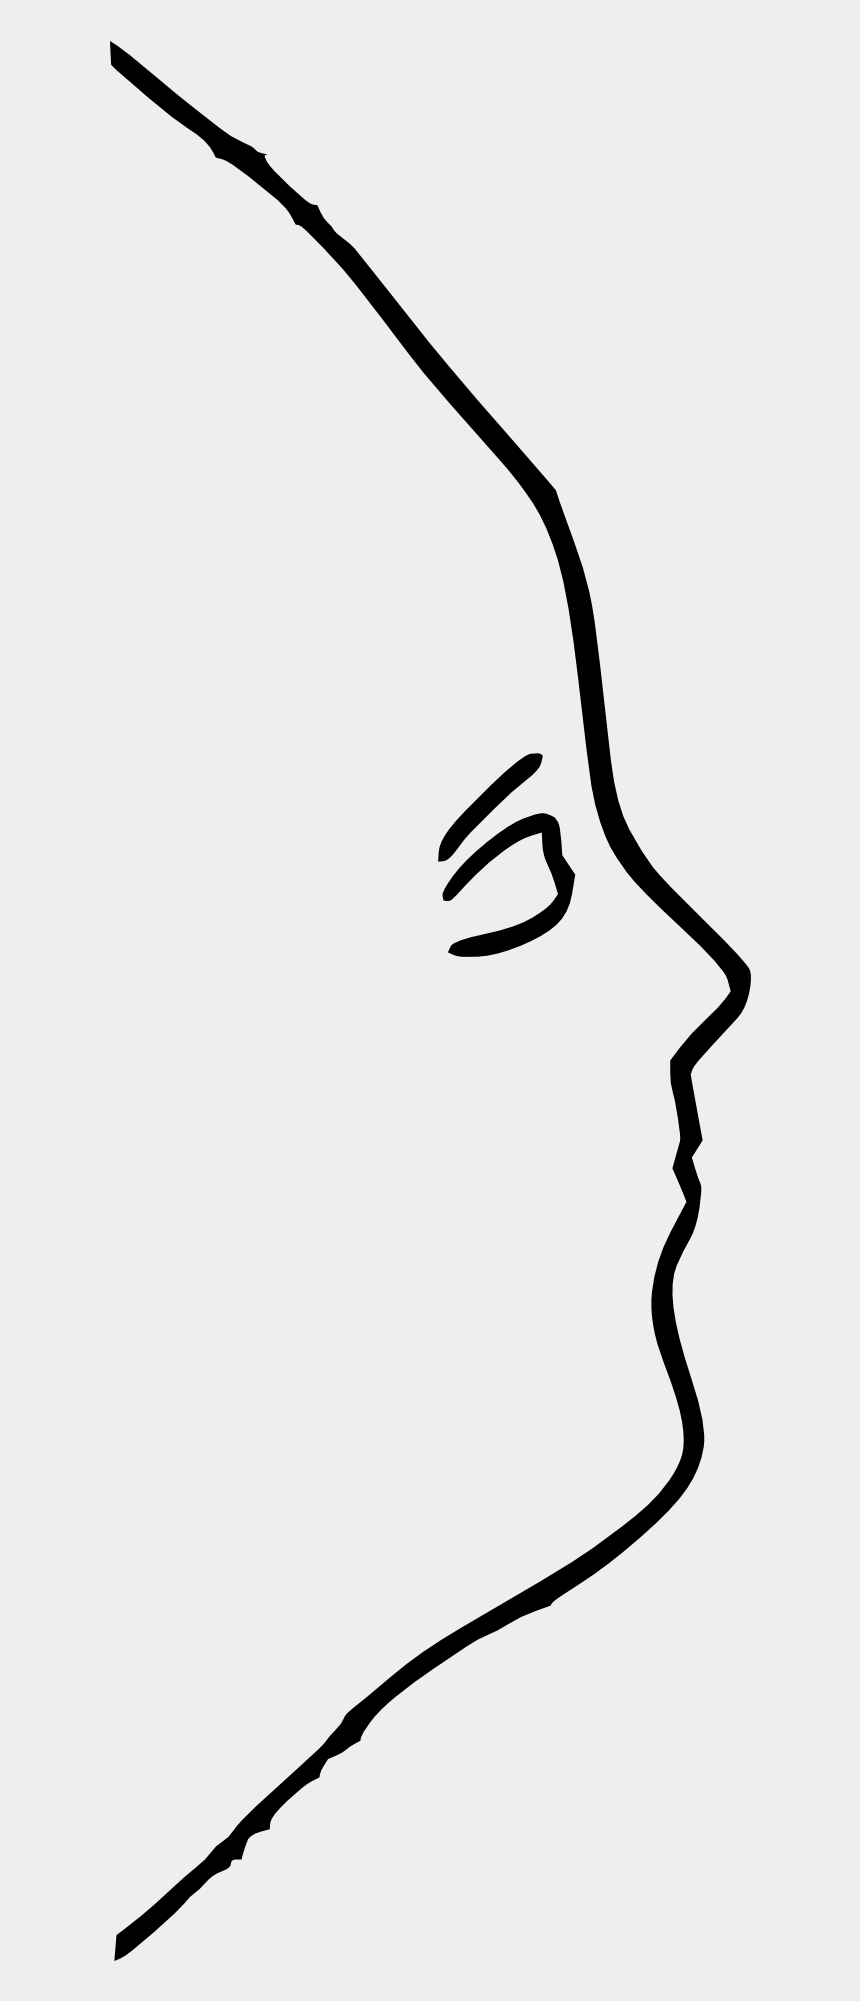 ugly woman clipart, Cartoons - Outline Of Woman's Face Side View